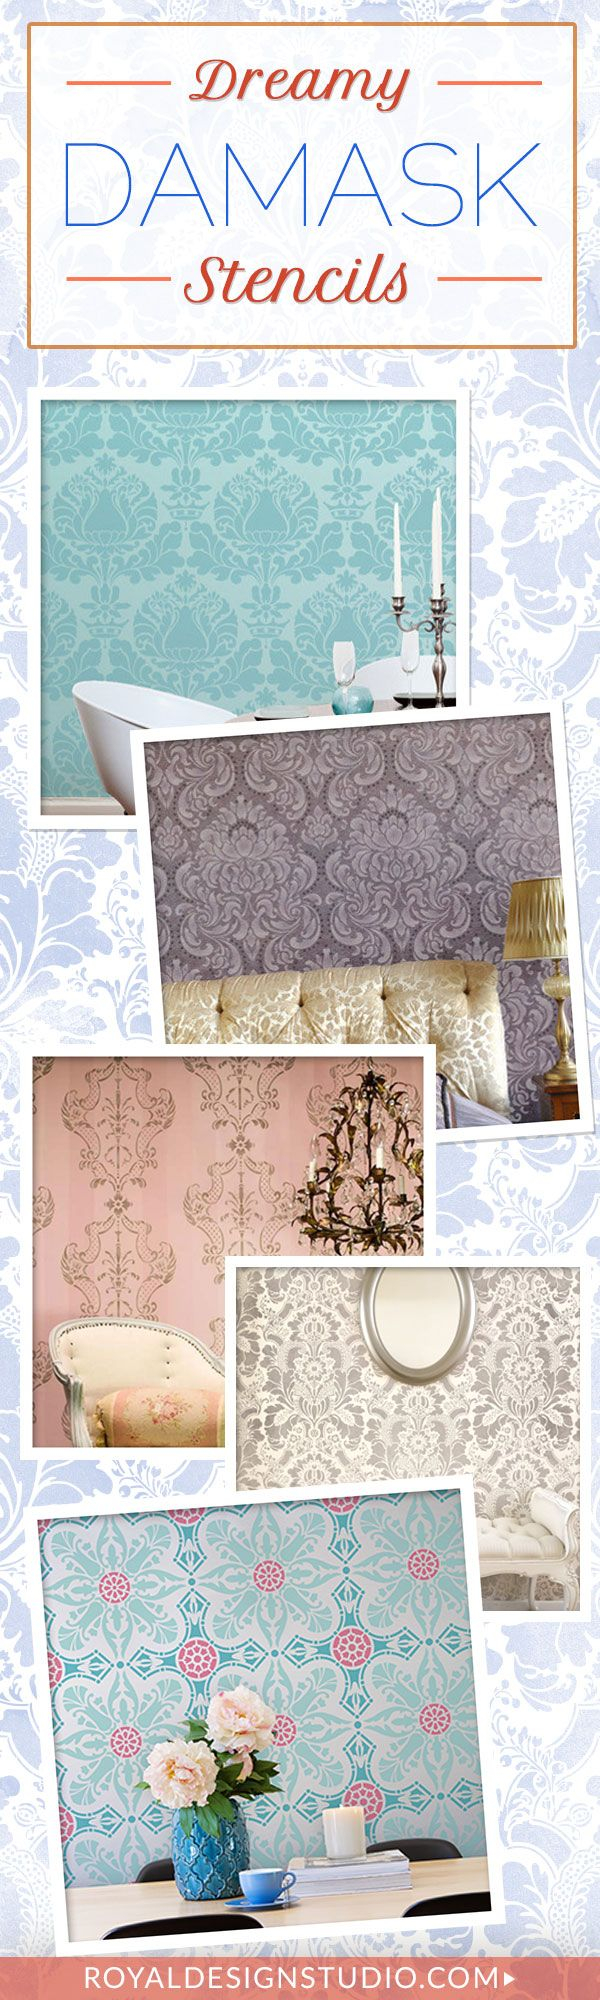 Best 25 damask wall ideas on pinterest damask wall stencils damask wall stencils for easy diy decorating wall decor designer wallpaper stenciling and painting pattern amipublicfo Image collections